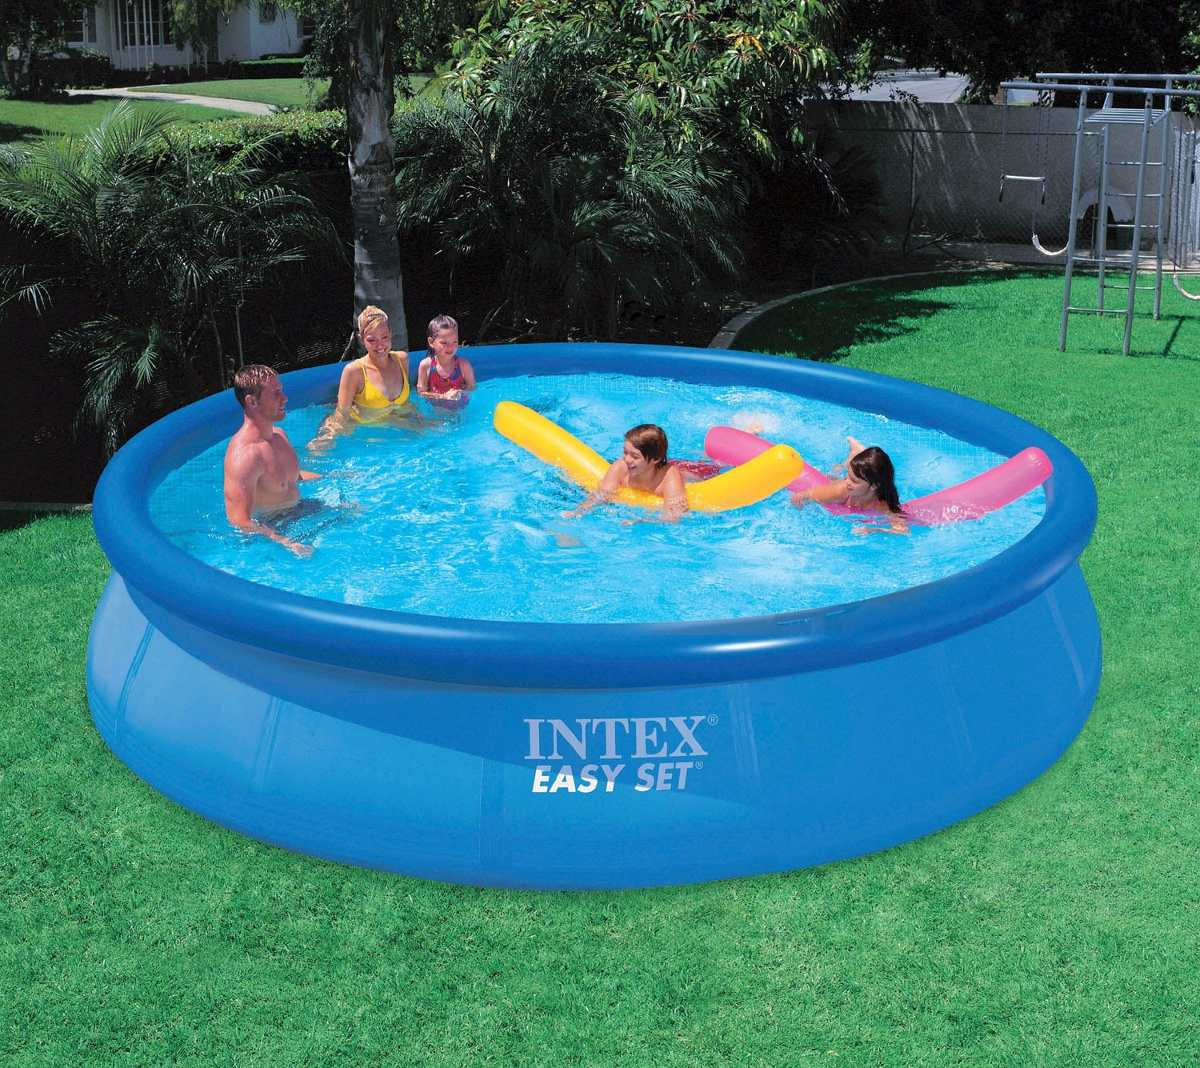 Alberca intex redondas f cil instalaci n grandes 15ft x for Alberca intex redonda